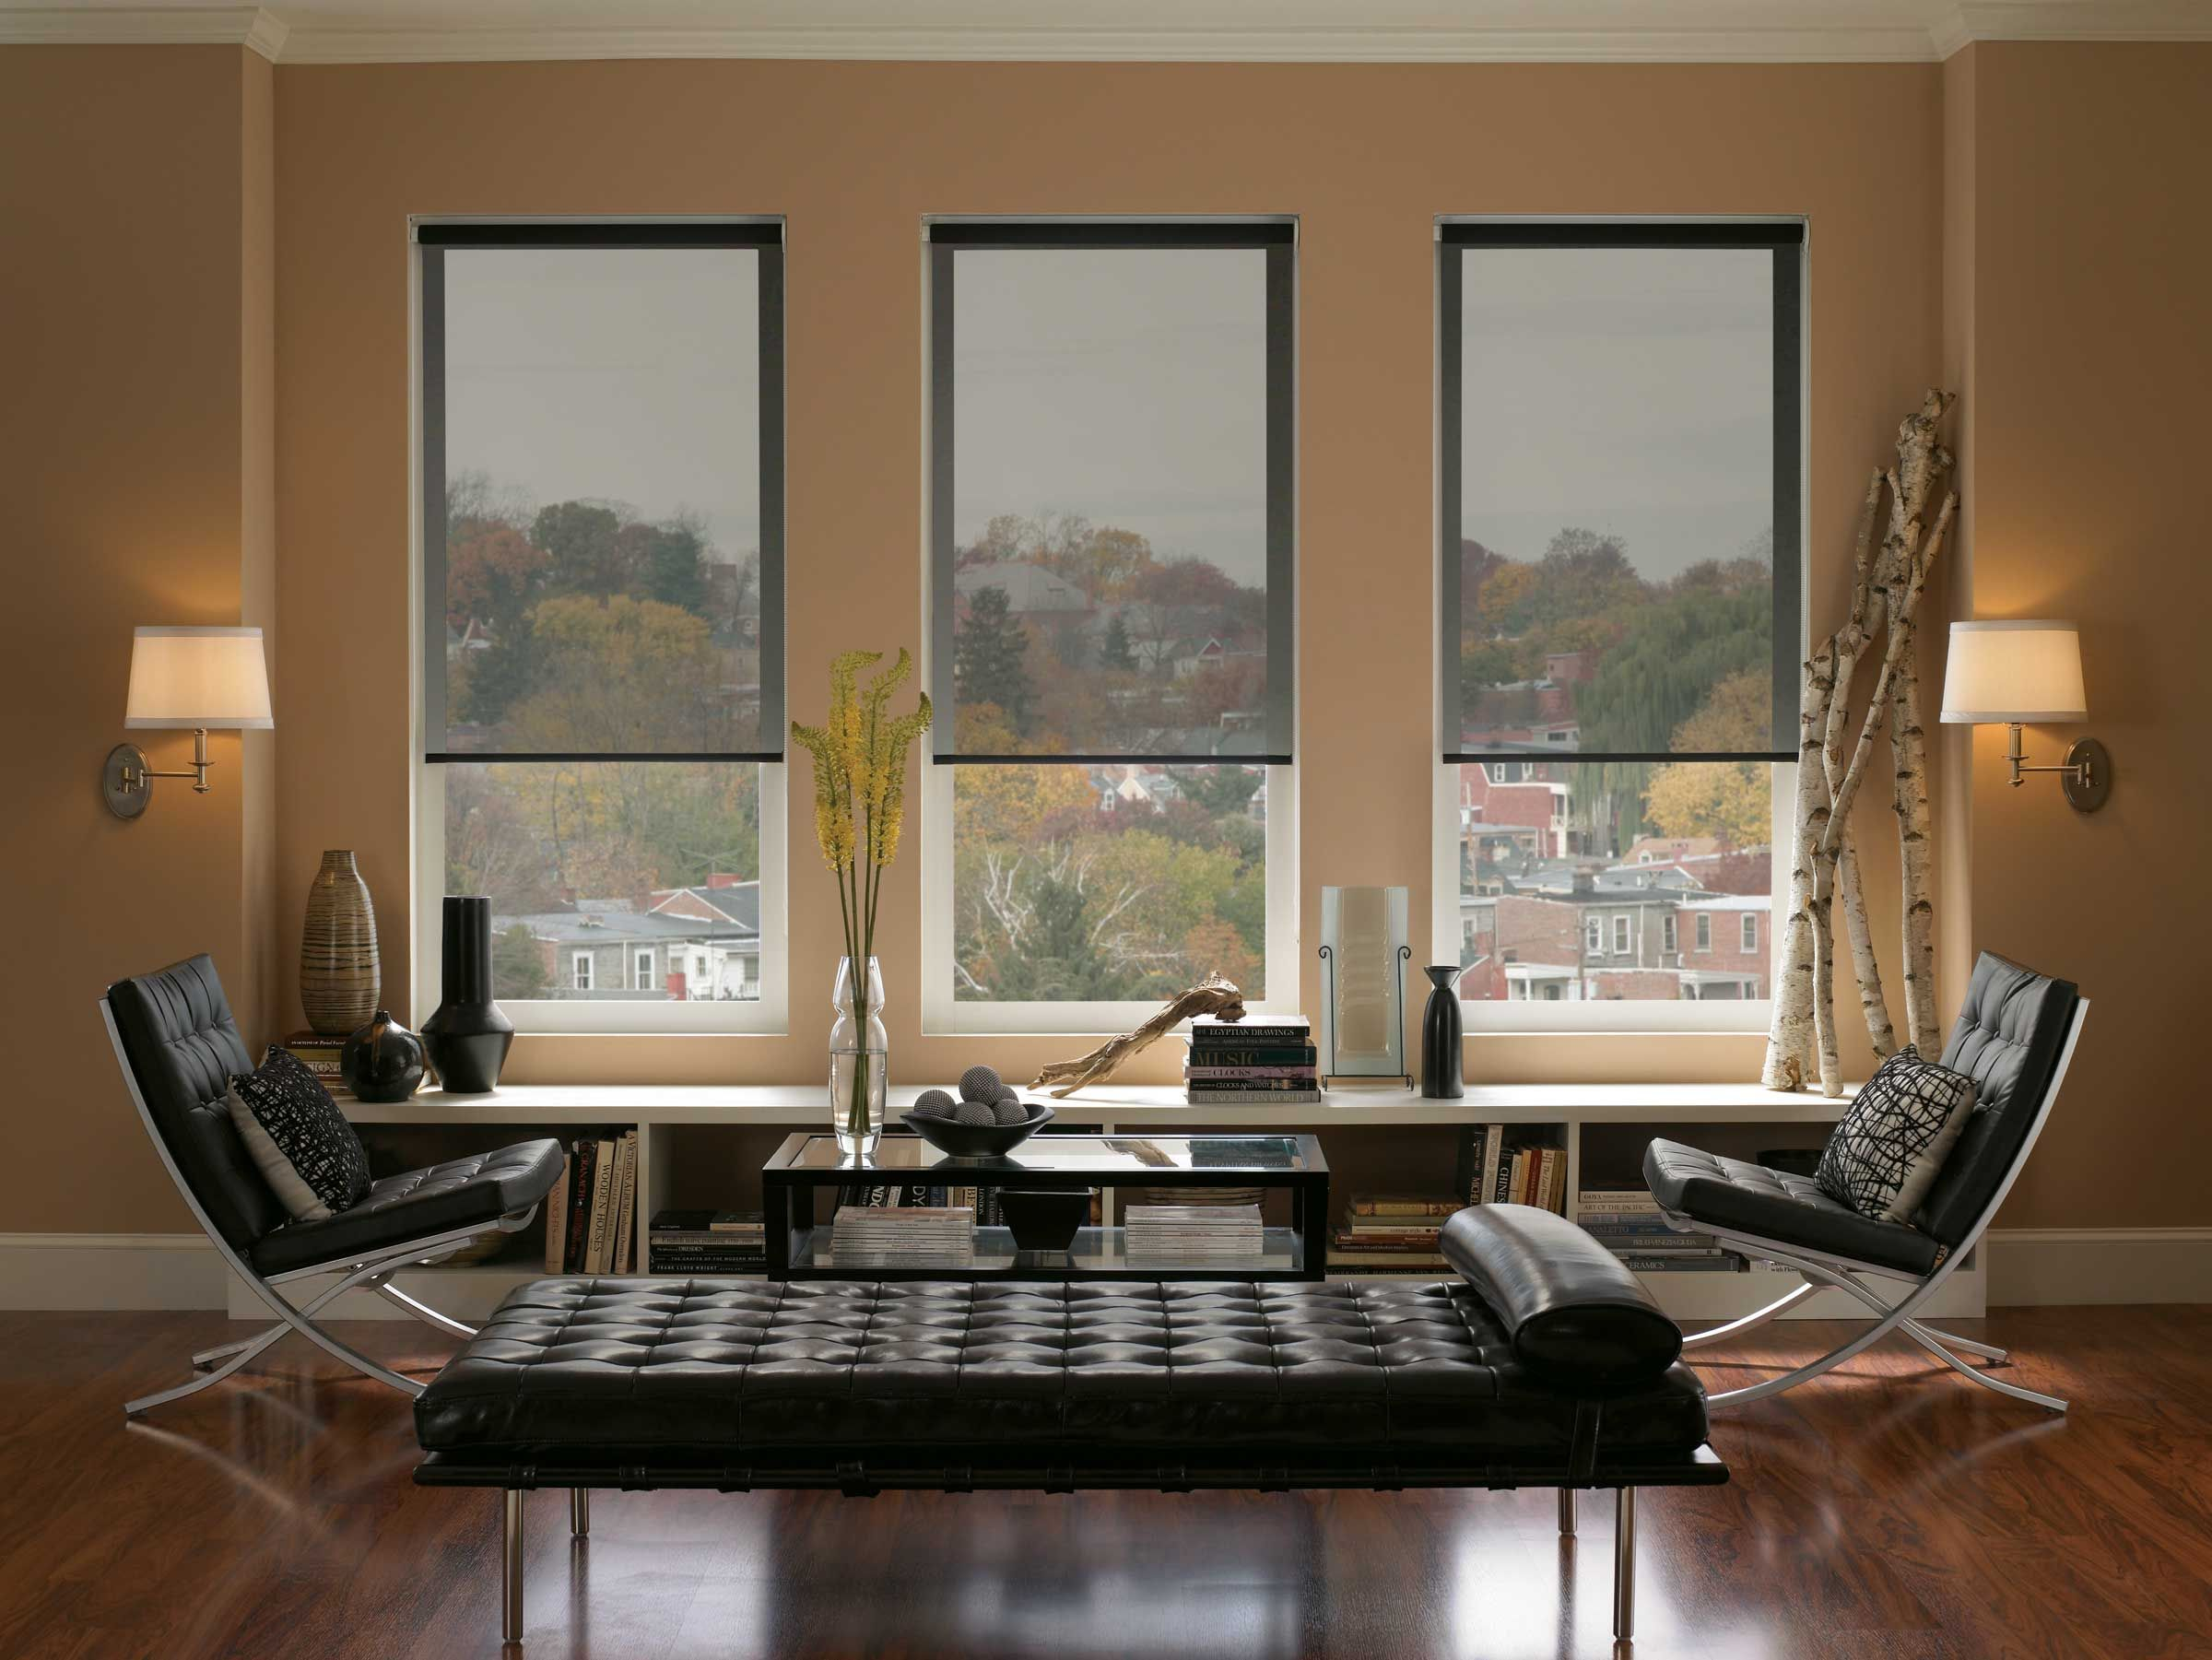 Estores Enrollables Negros En Una Sala De Estar Con Estilo Moderno Black Roller Window Blinds